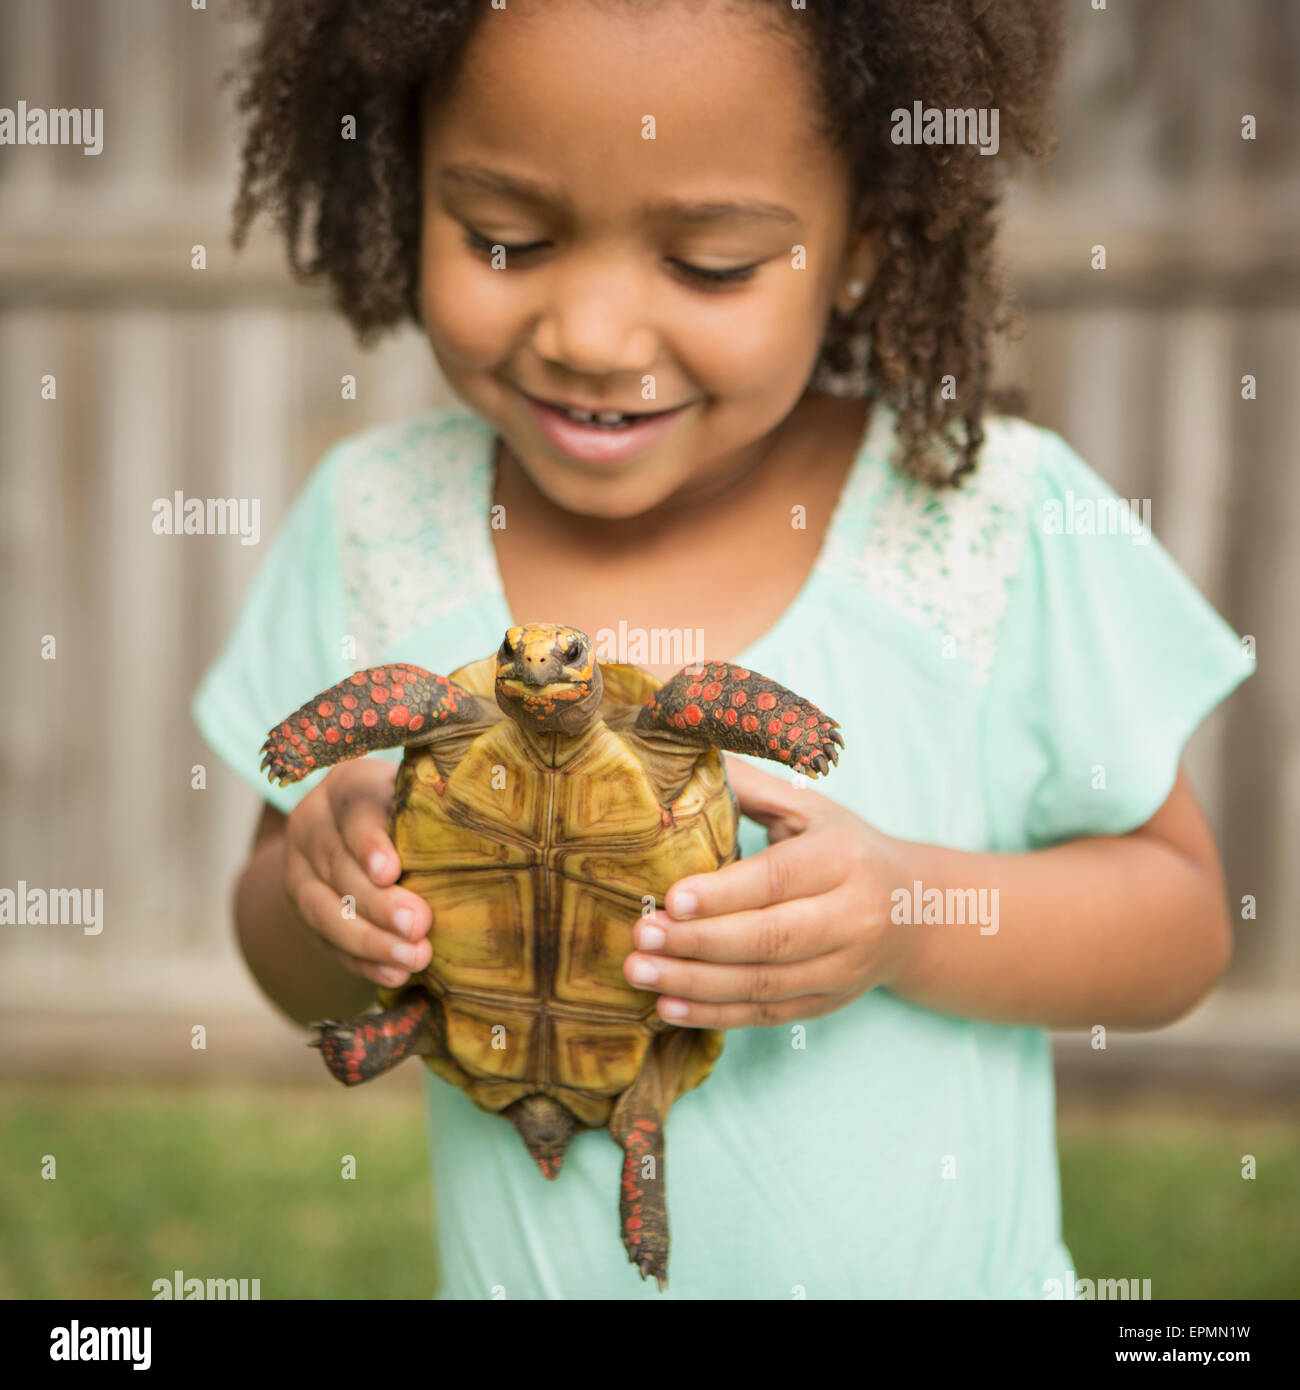 A child holding a tortoise. - Stock Image